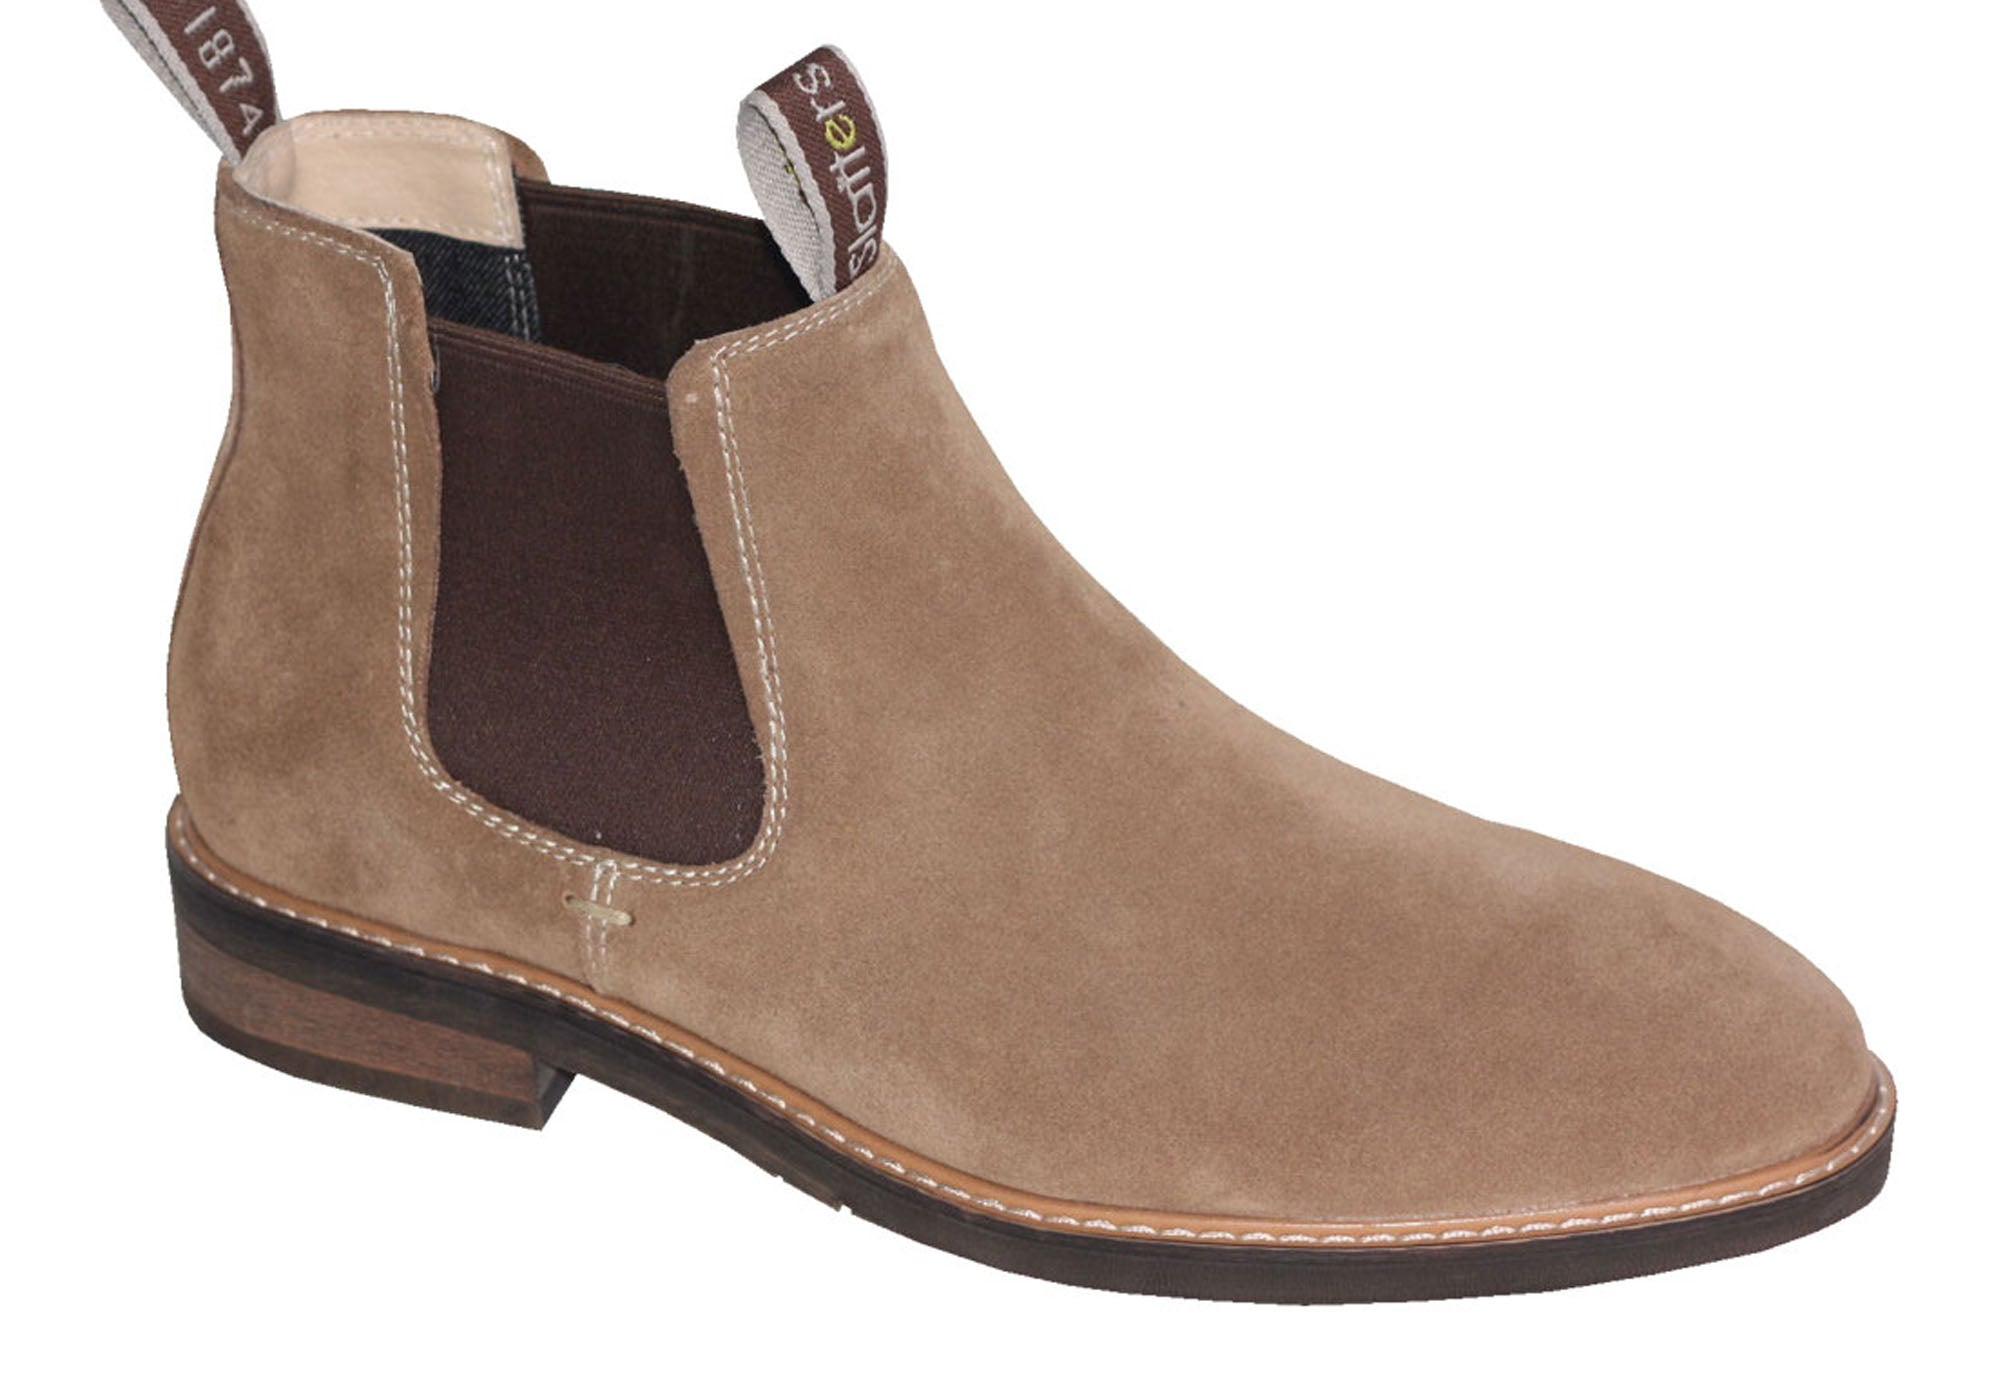 Brand New Slatters Oreilly Mens Comfortable Suede Chelsea Pull On Dress Boots